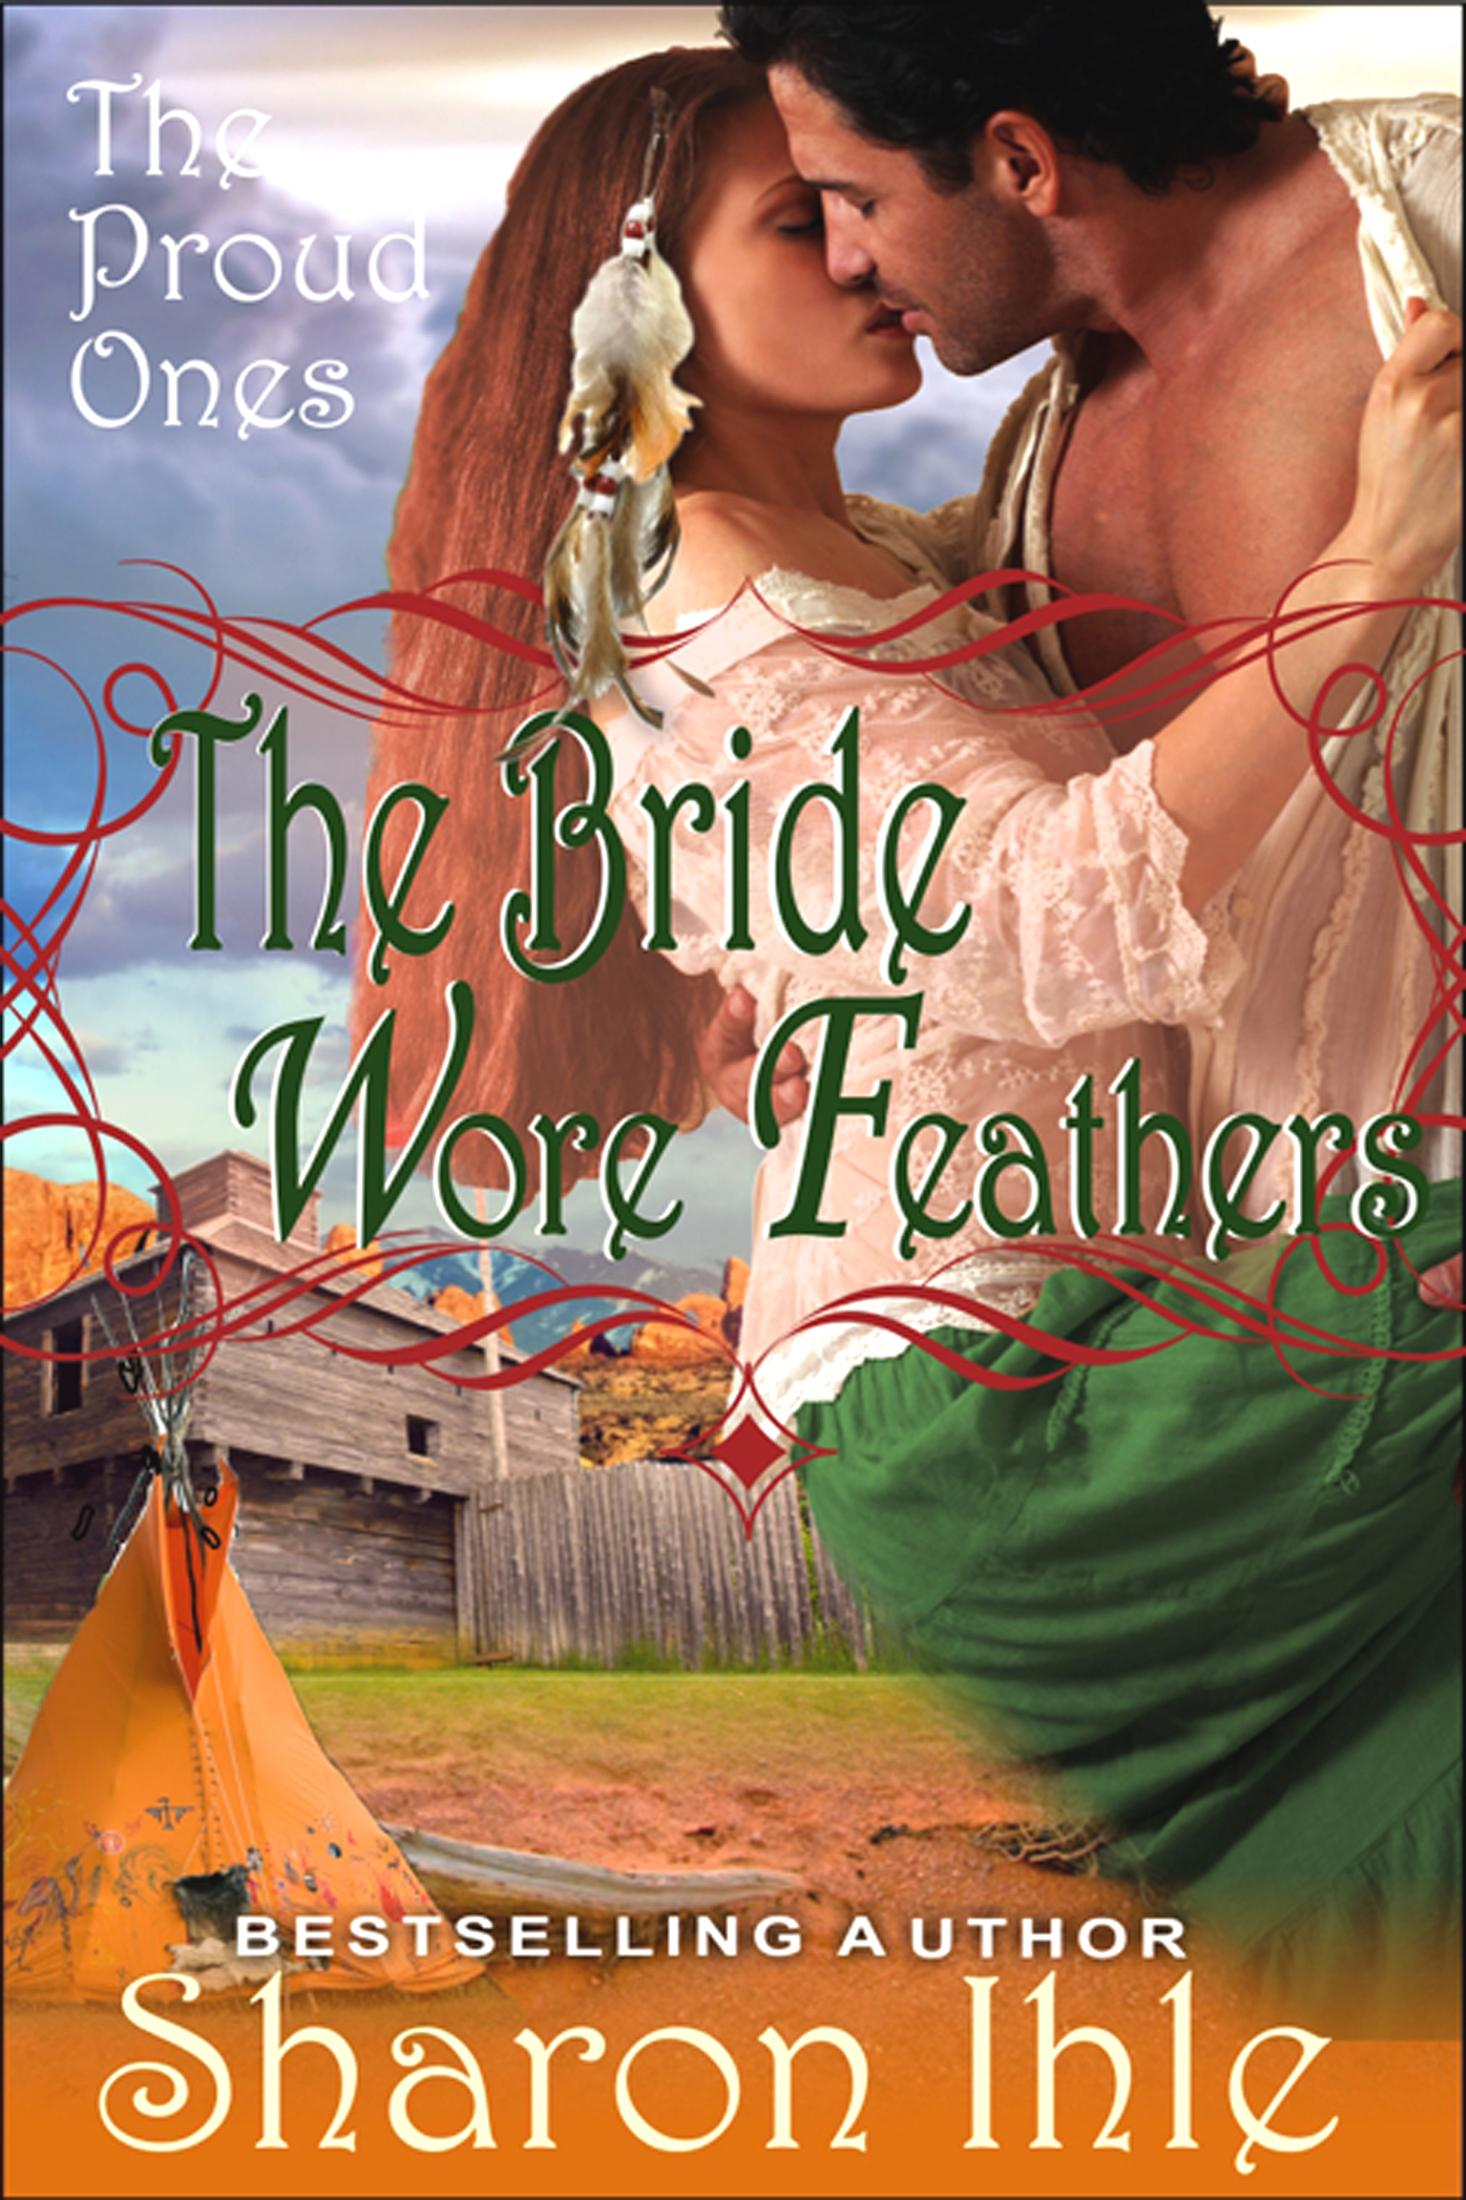 The Bride Wore Feathers (The Proud Ones, Book 1) EB9781614173434